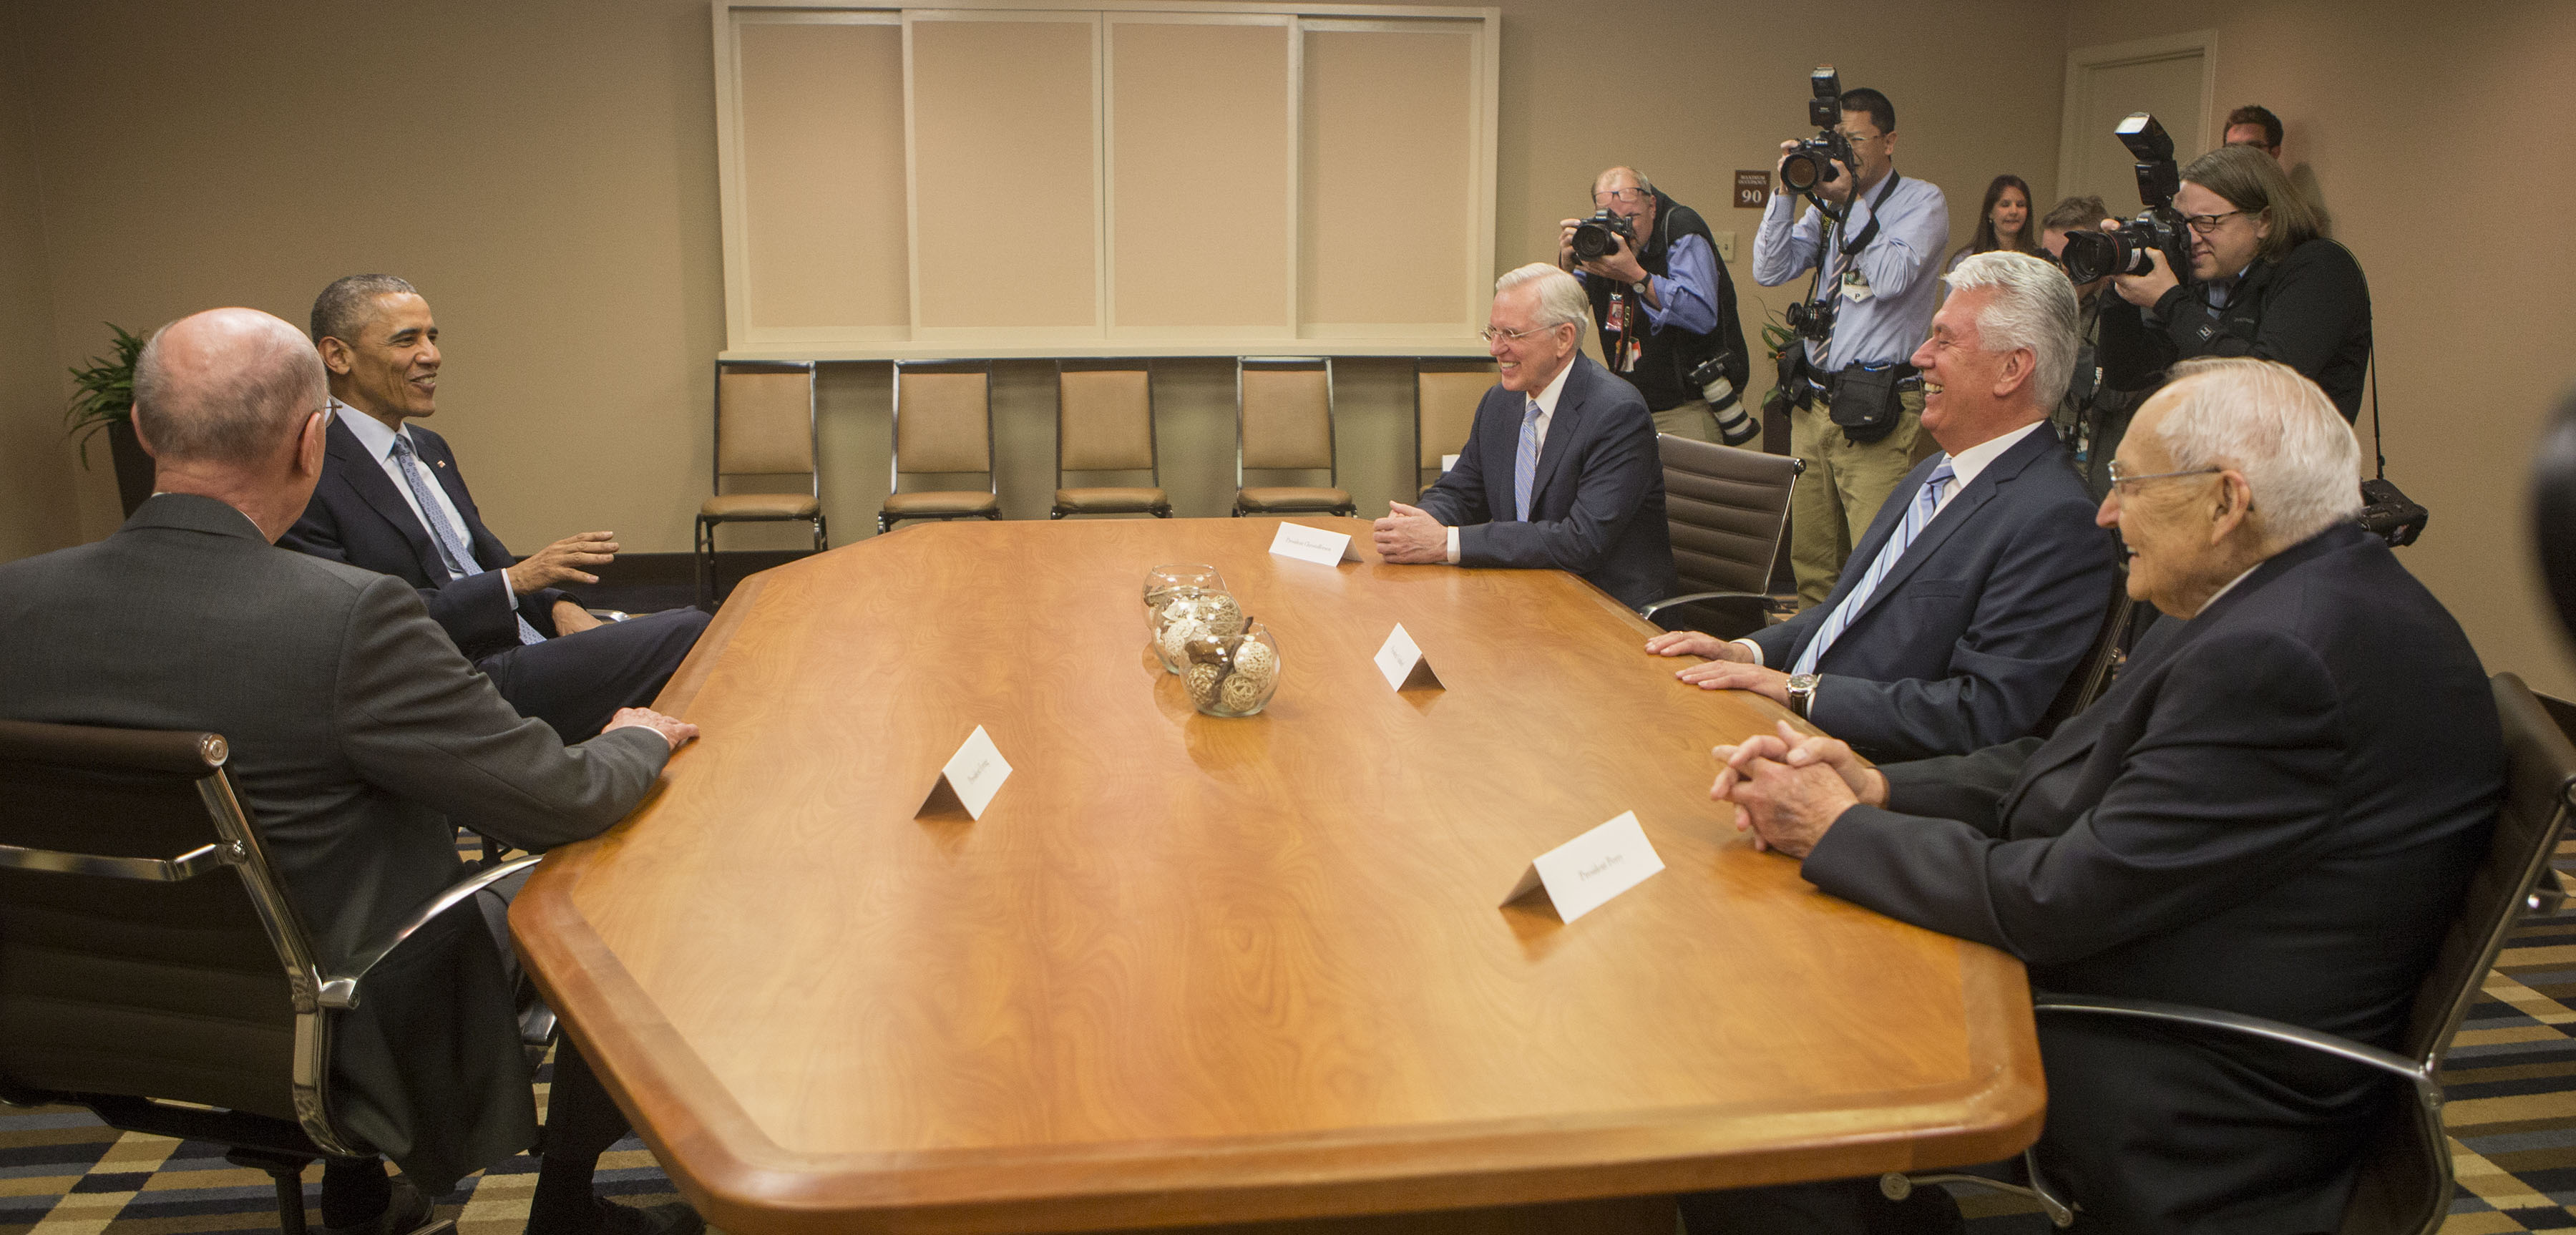 President Barack Obama meets with LDS Leaders President Henry B. Eyring, Elder D. Todd Christofferson, President Dieter F. Uctdorf Elder L. Tom Perry after arriving at the Sheraton Hotel Thursday, April 2, 2015, in Salt Lake City Utah.